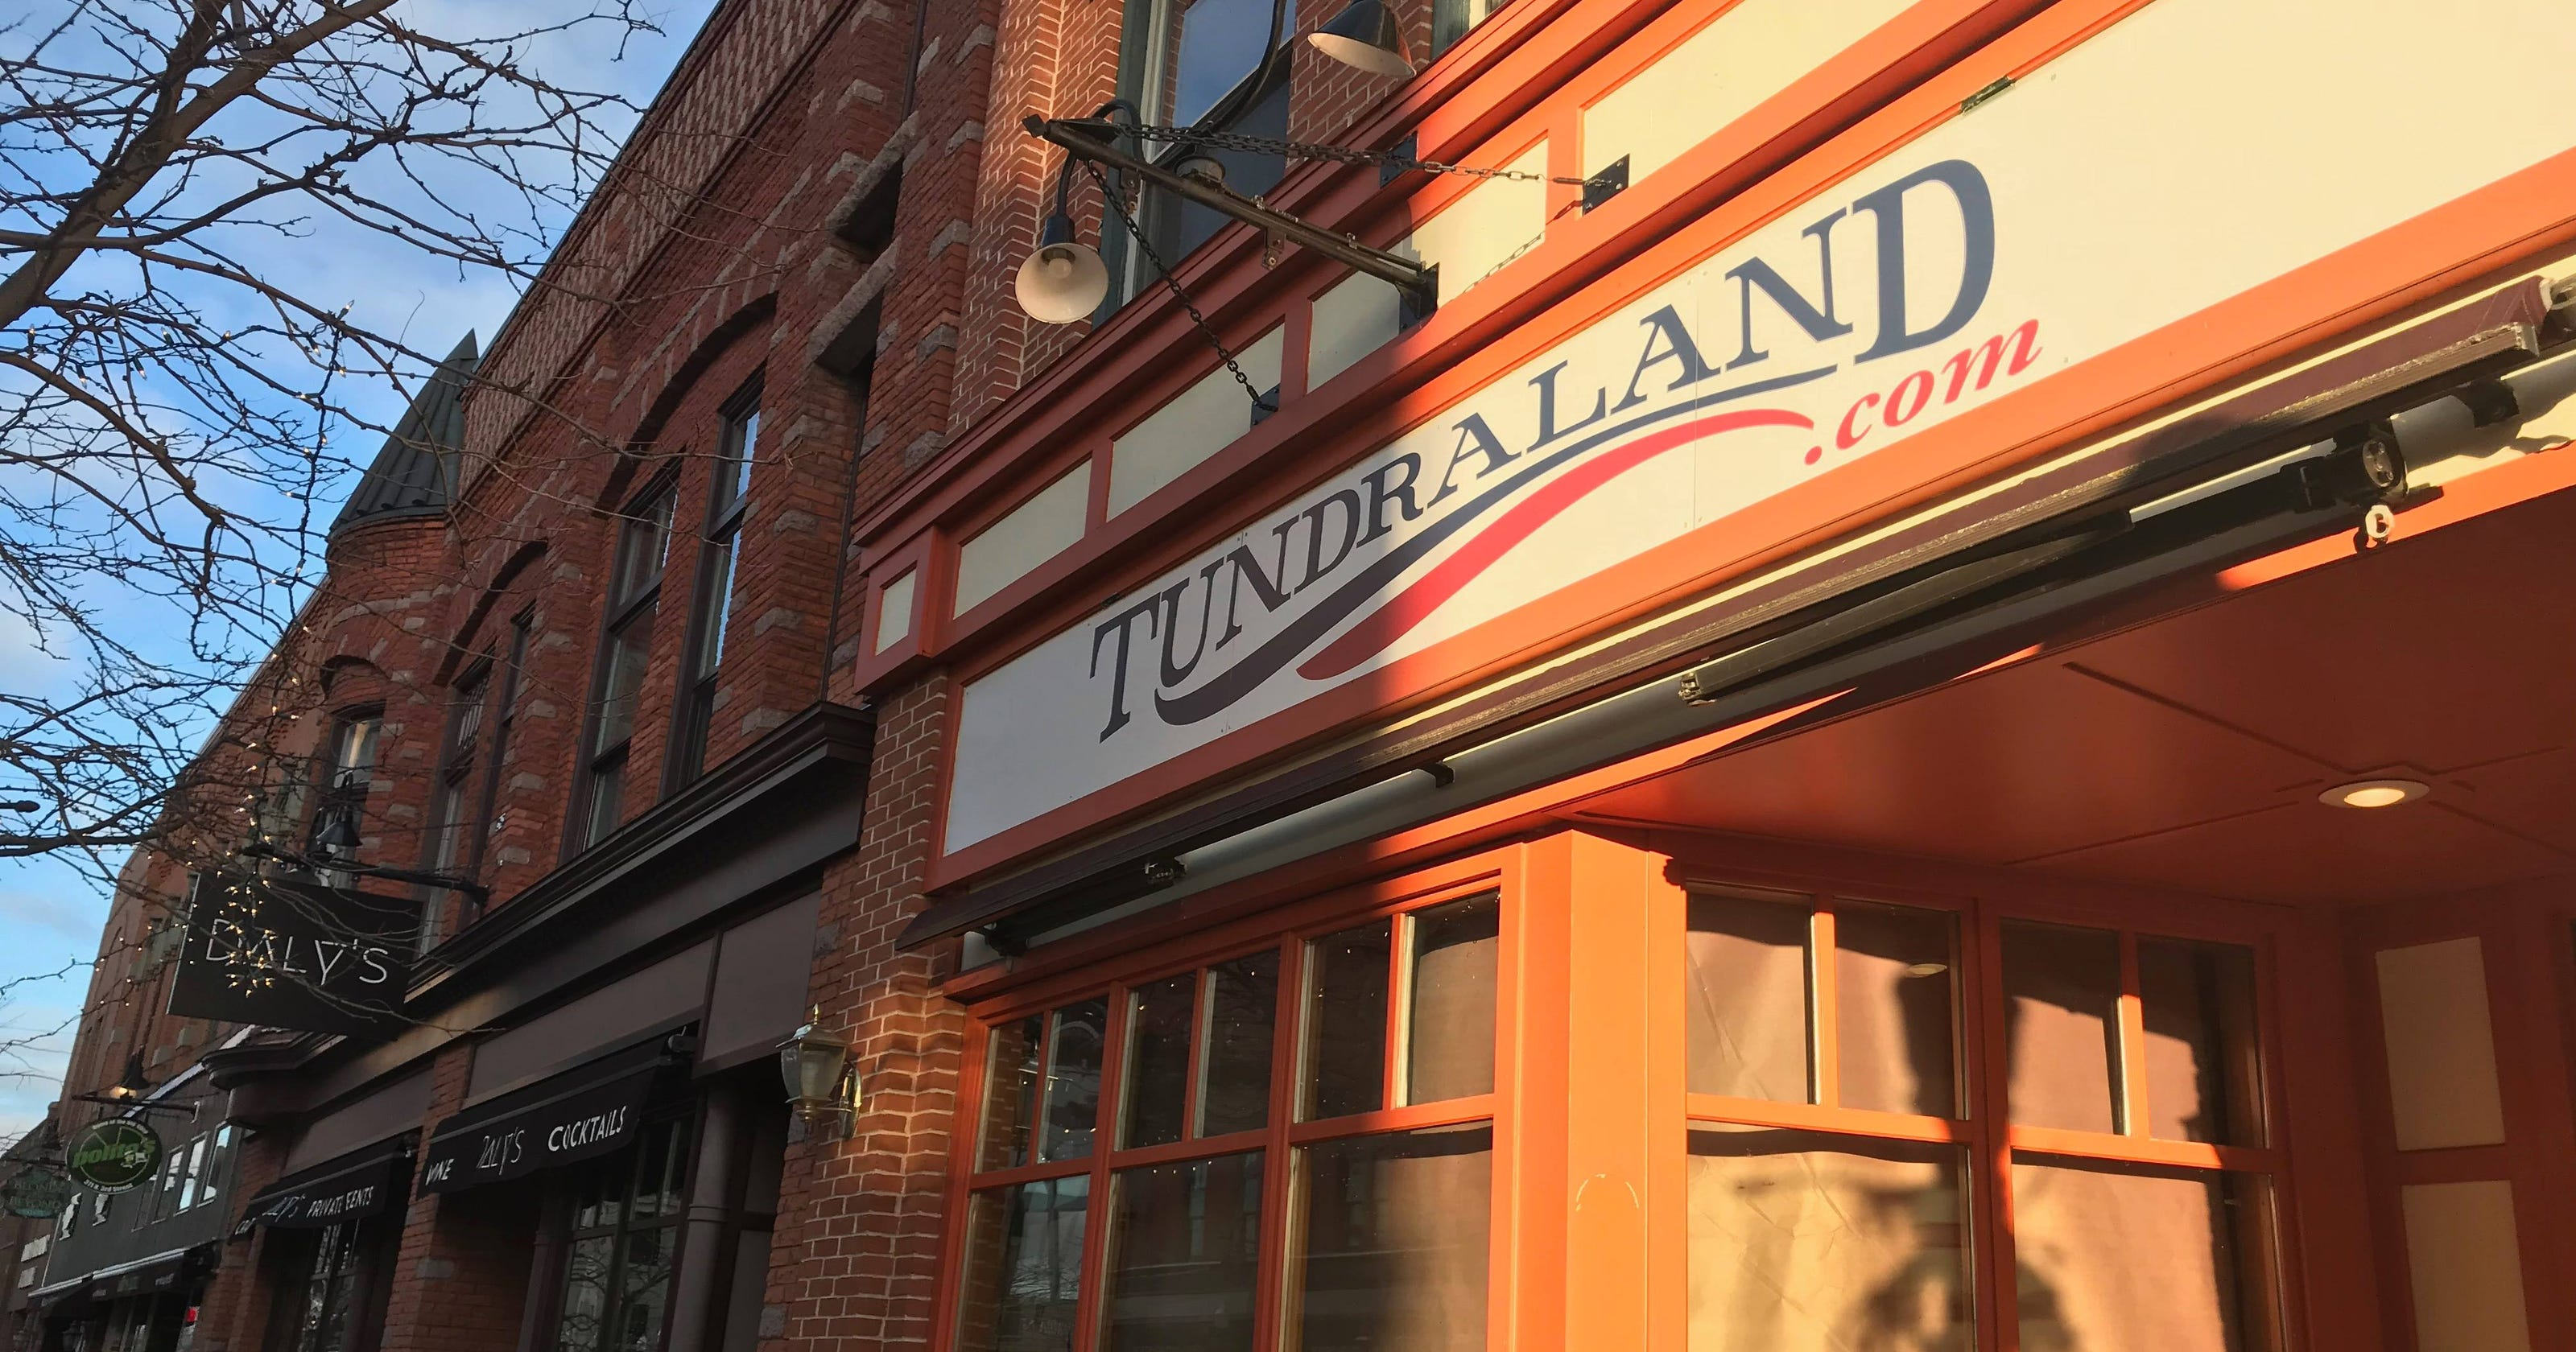 Tundraland In Wausau Home Remodeling Company To Open Downtown - Bathroom remodeling wausau wi